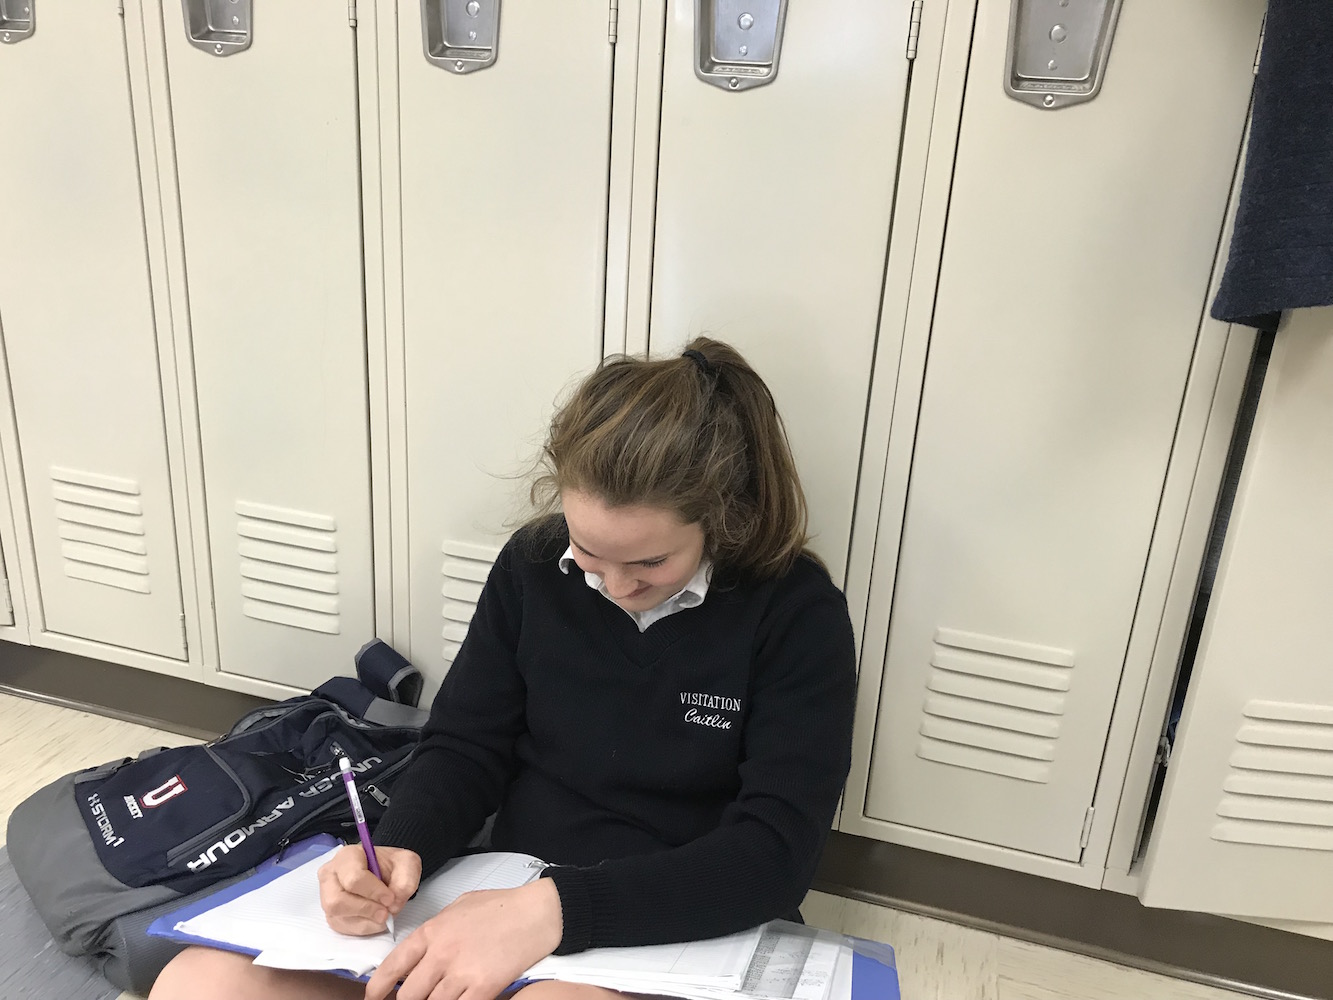 Callie O'Neill studying at her locker.